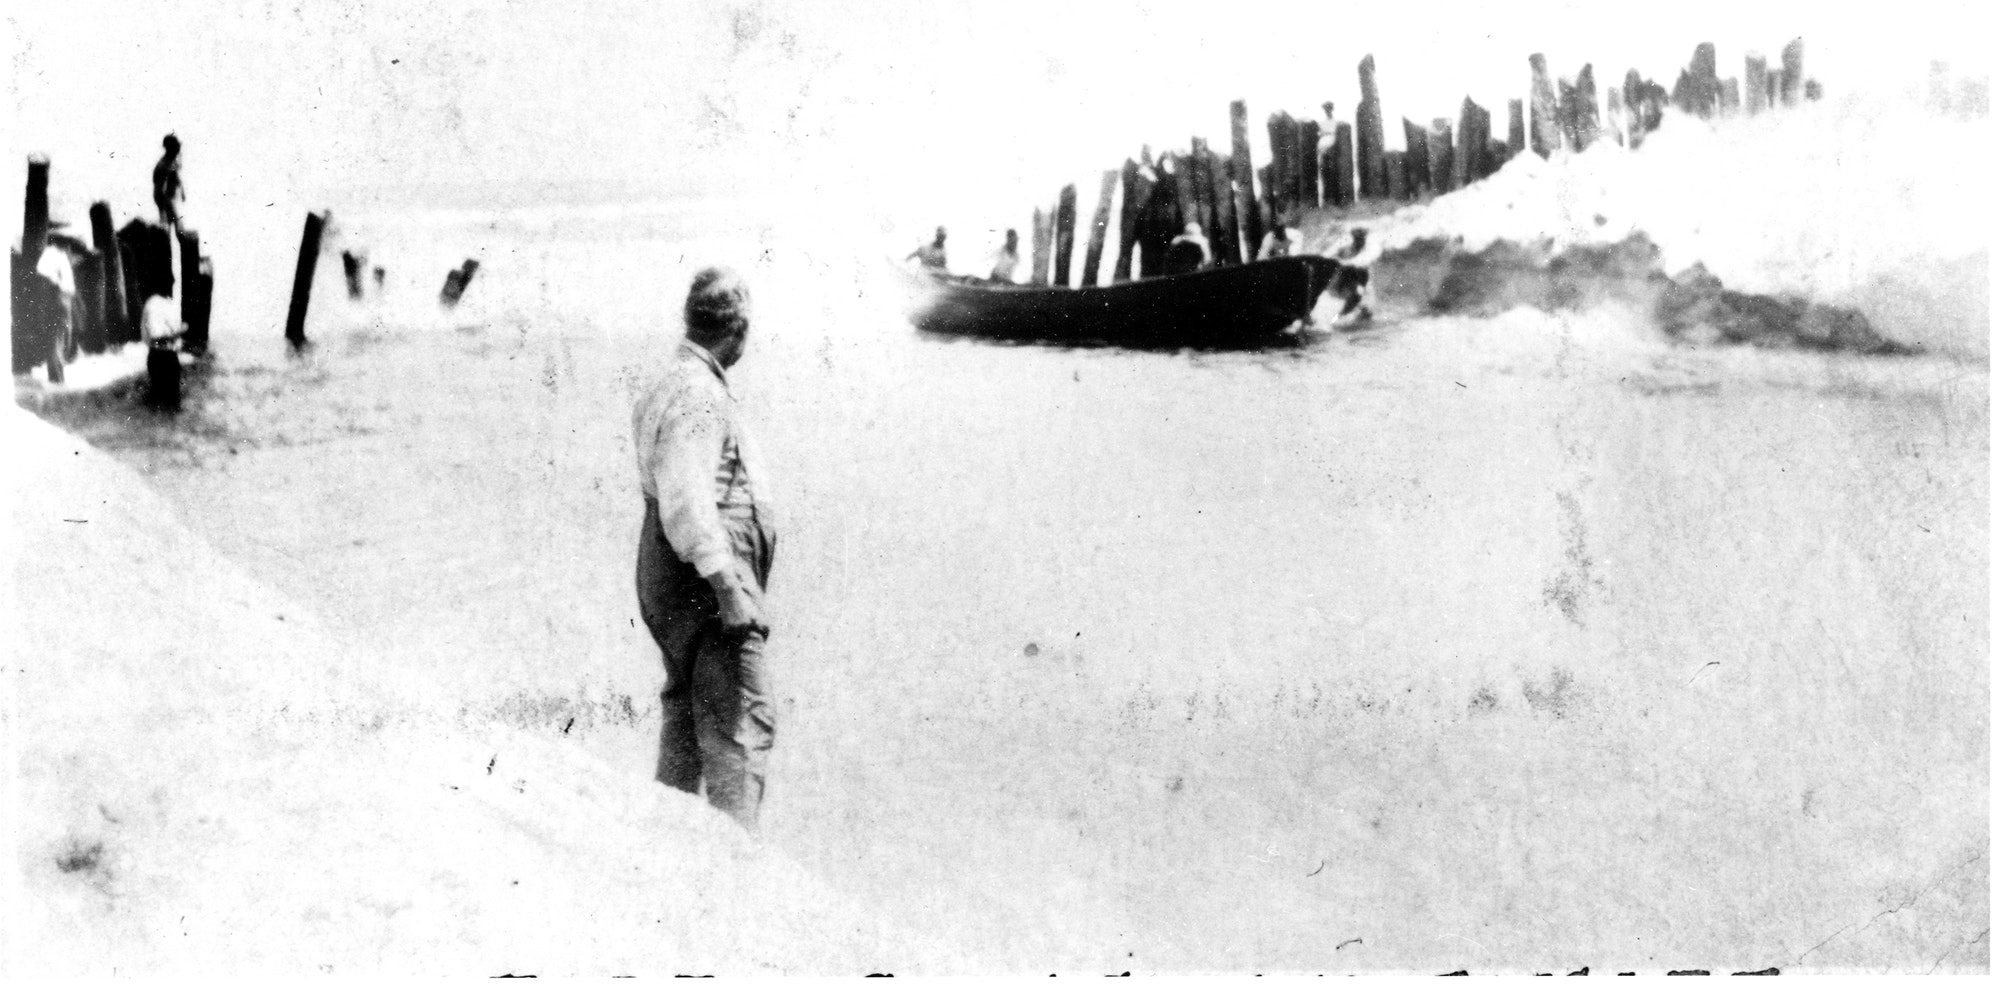 historical photo from 1918 showing a man standing in the foreground with a boat coming through the inlet